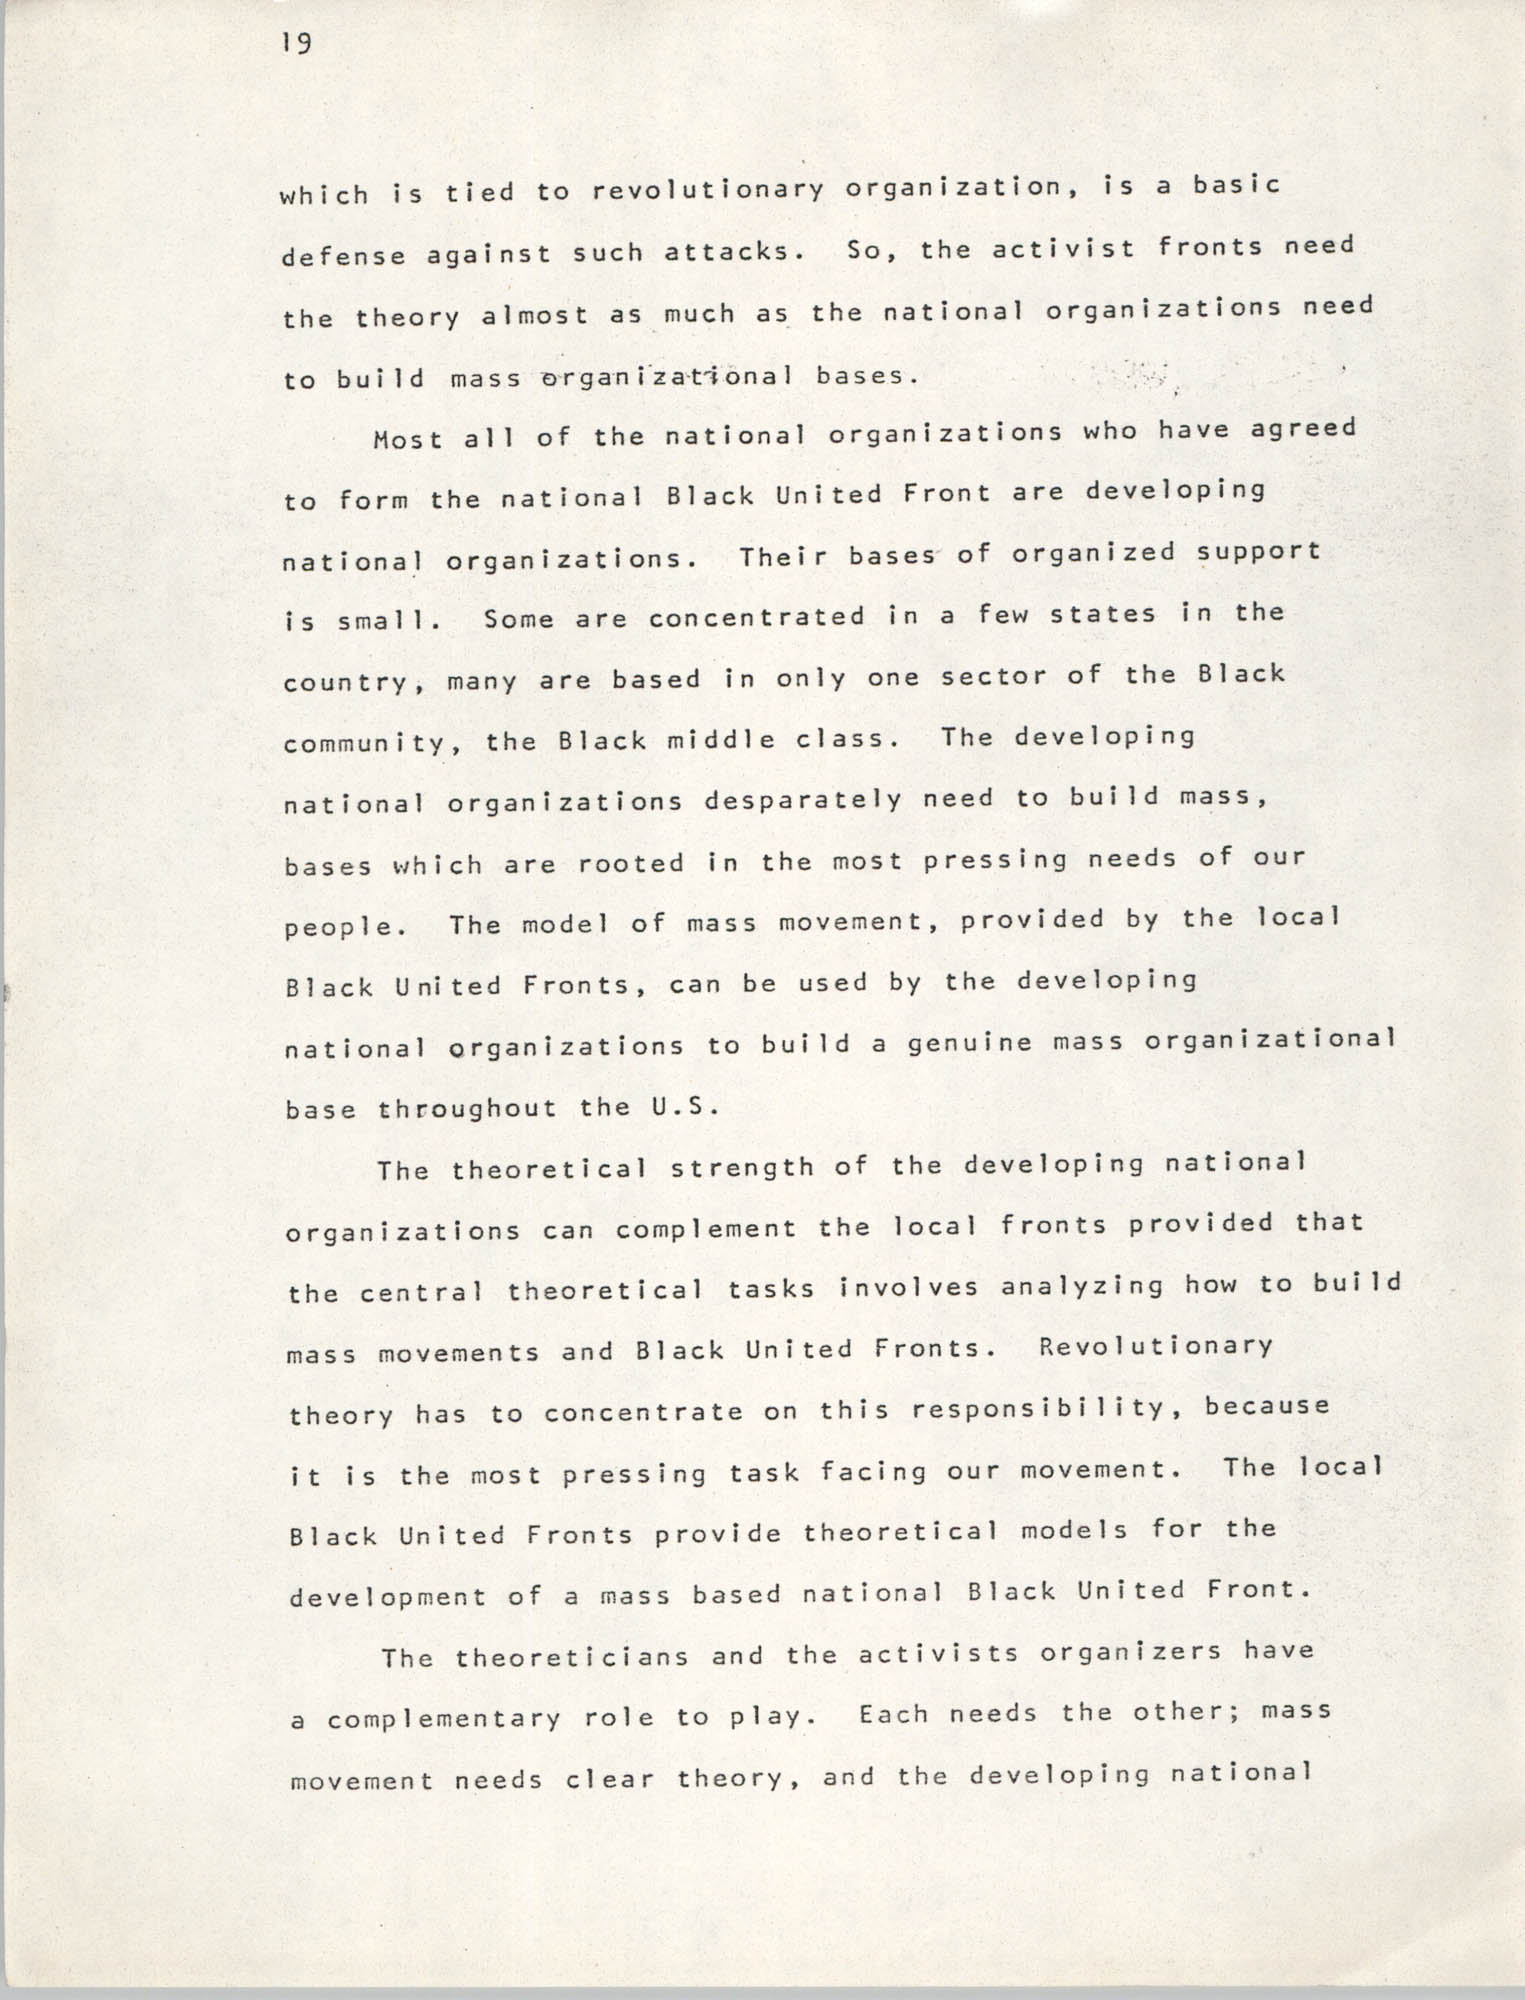 Pan-African Committee of the Black United Front, Page 19